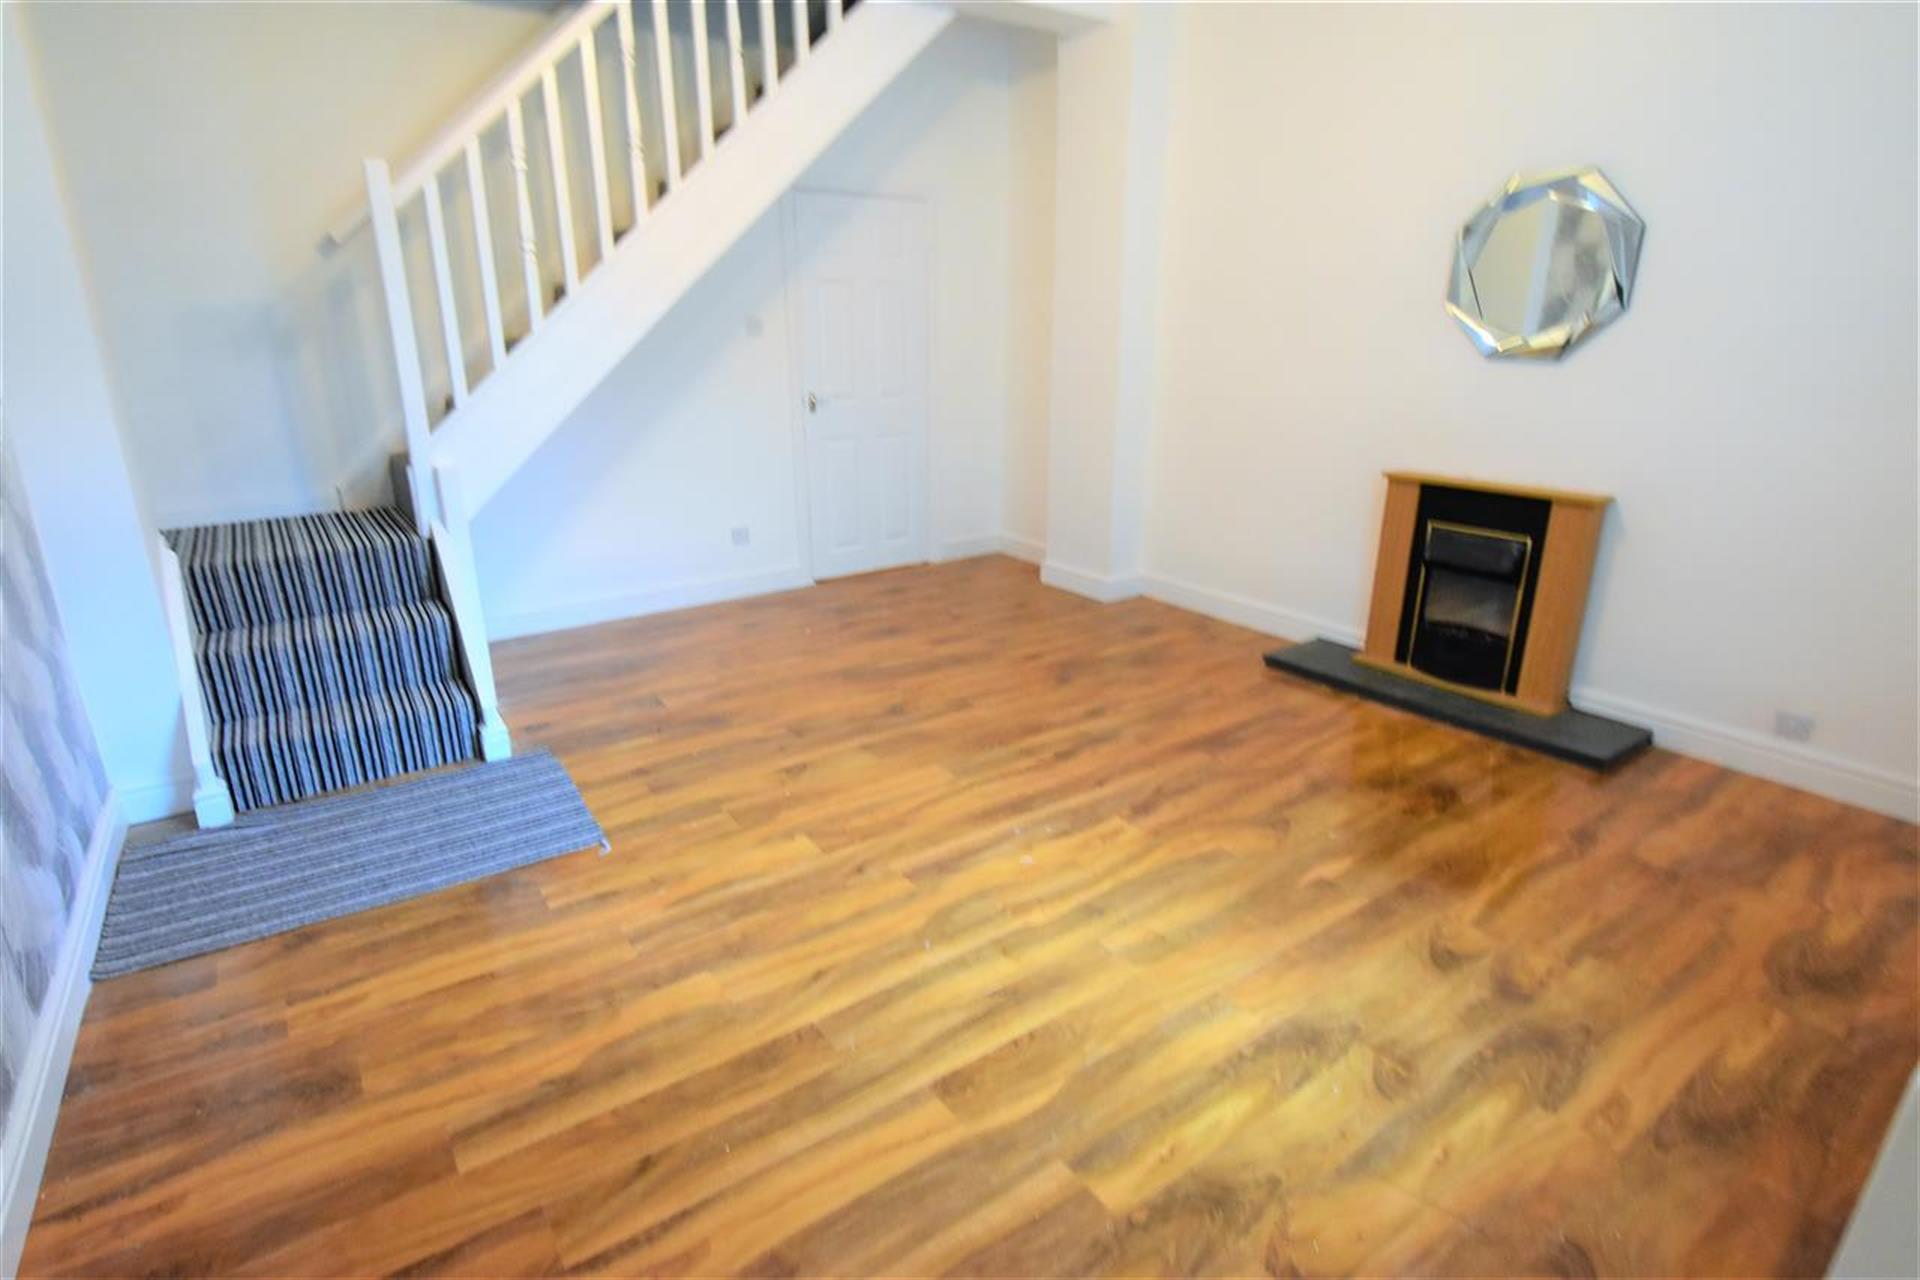 2 Bedroom Terraced House For Sale - Second Reception Room